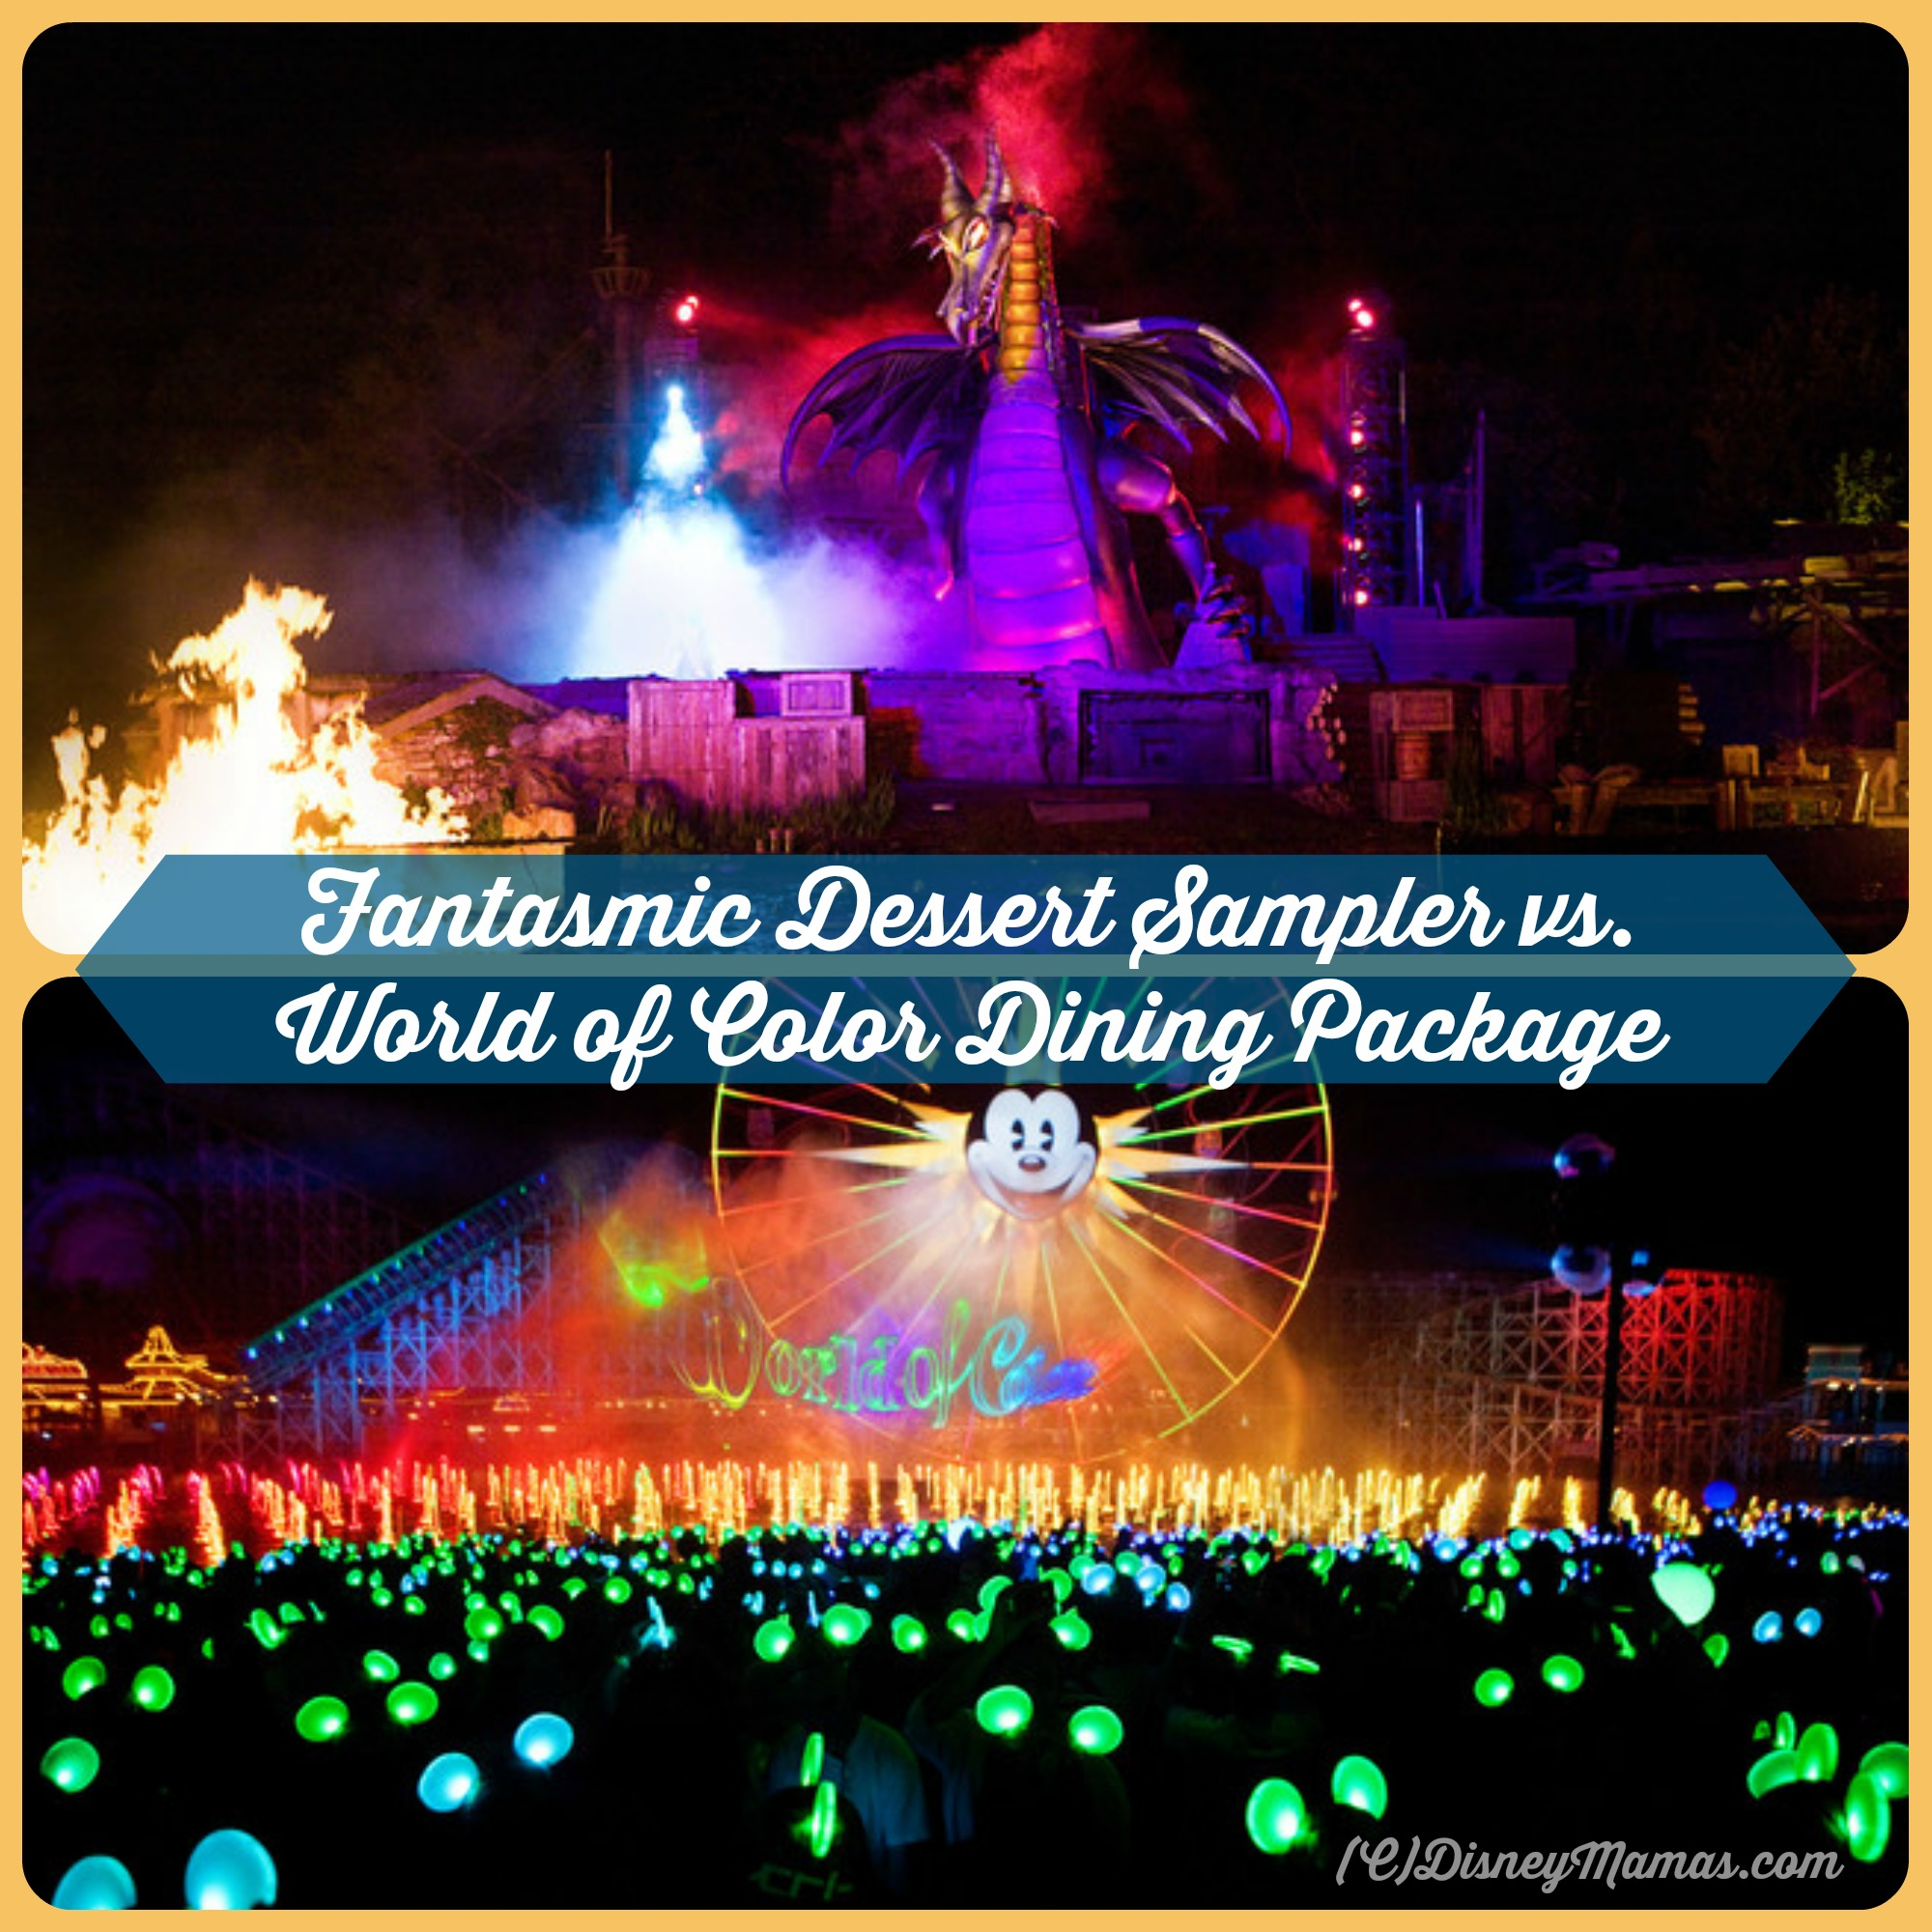 Fantasmic Premium Seating with Dessert Sampler vs. World of Color Dining Package.